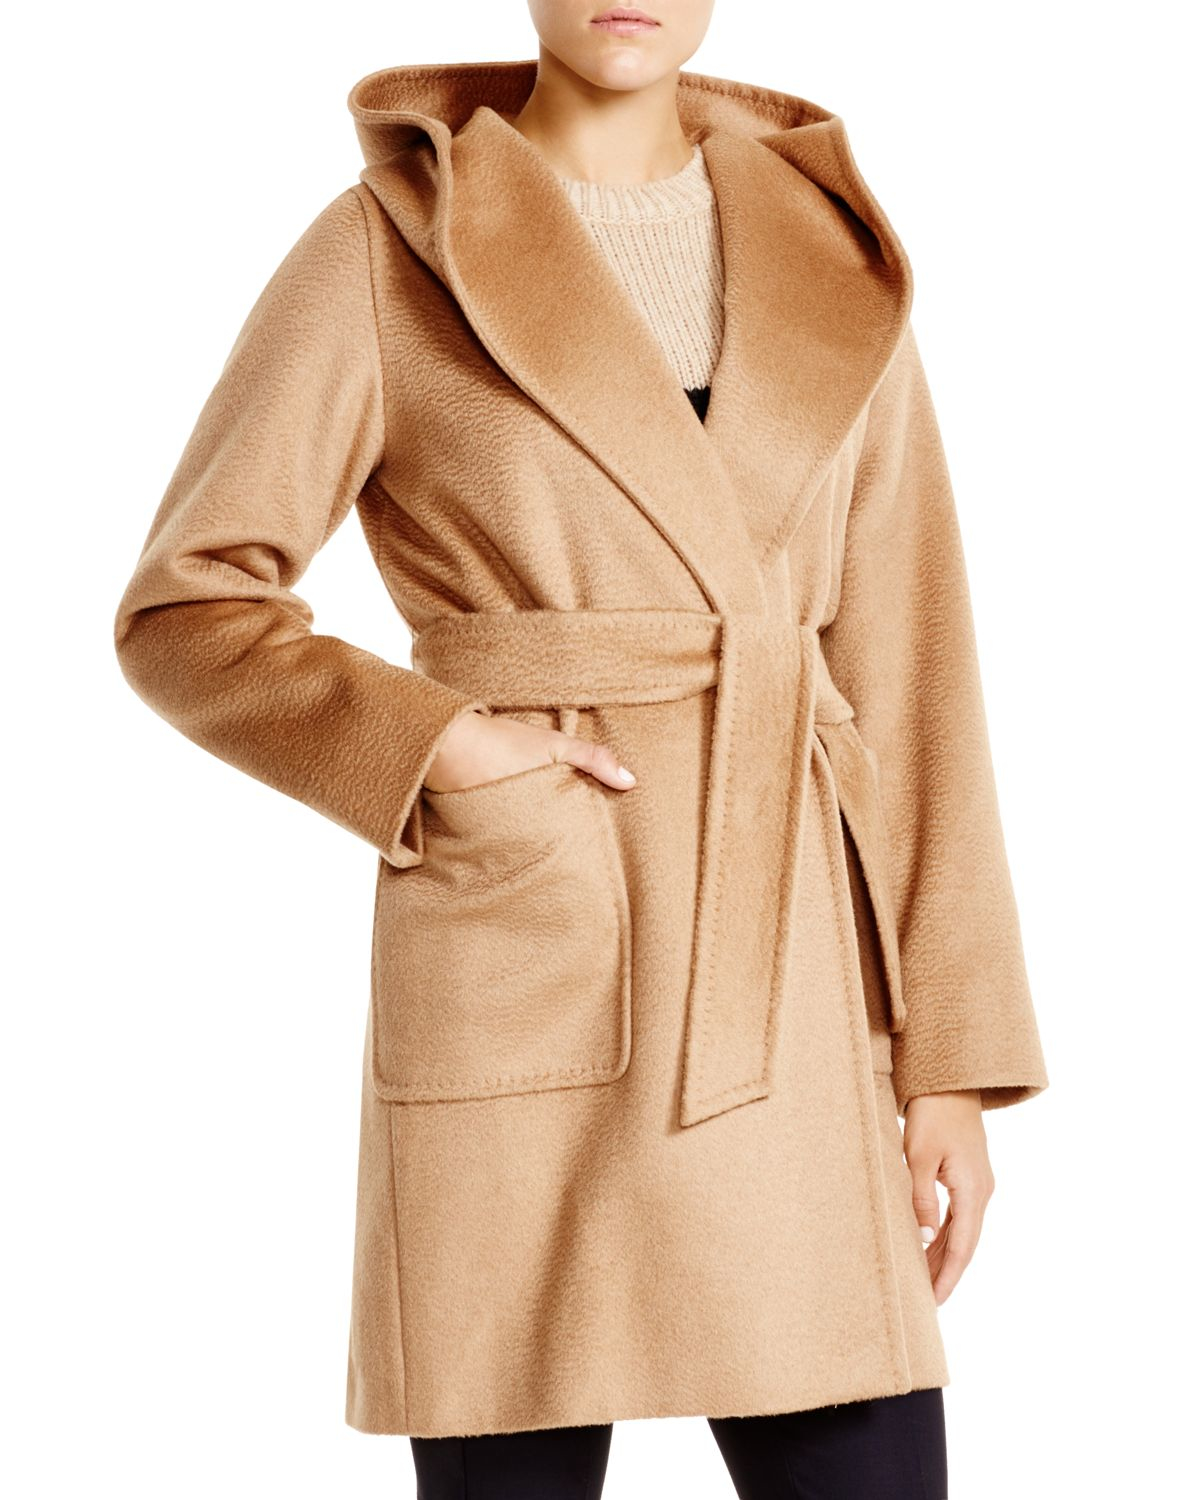 022e7d2dc5a Lyst - Max Mara Rialto Coat in Natural